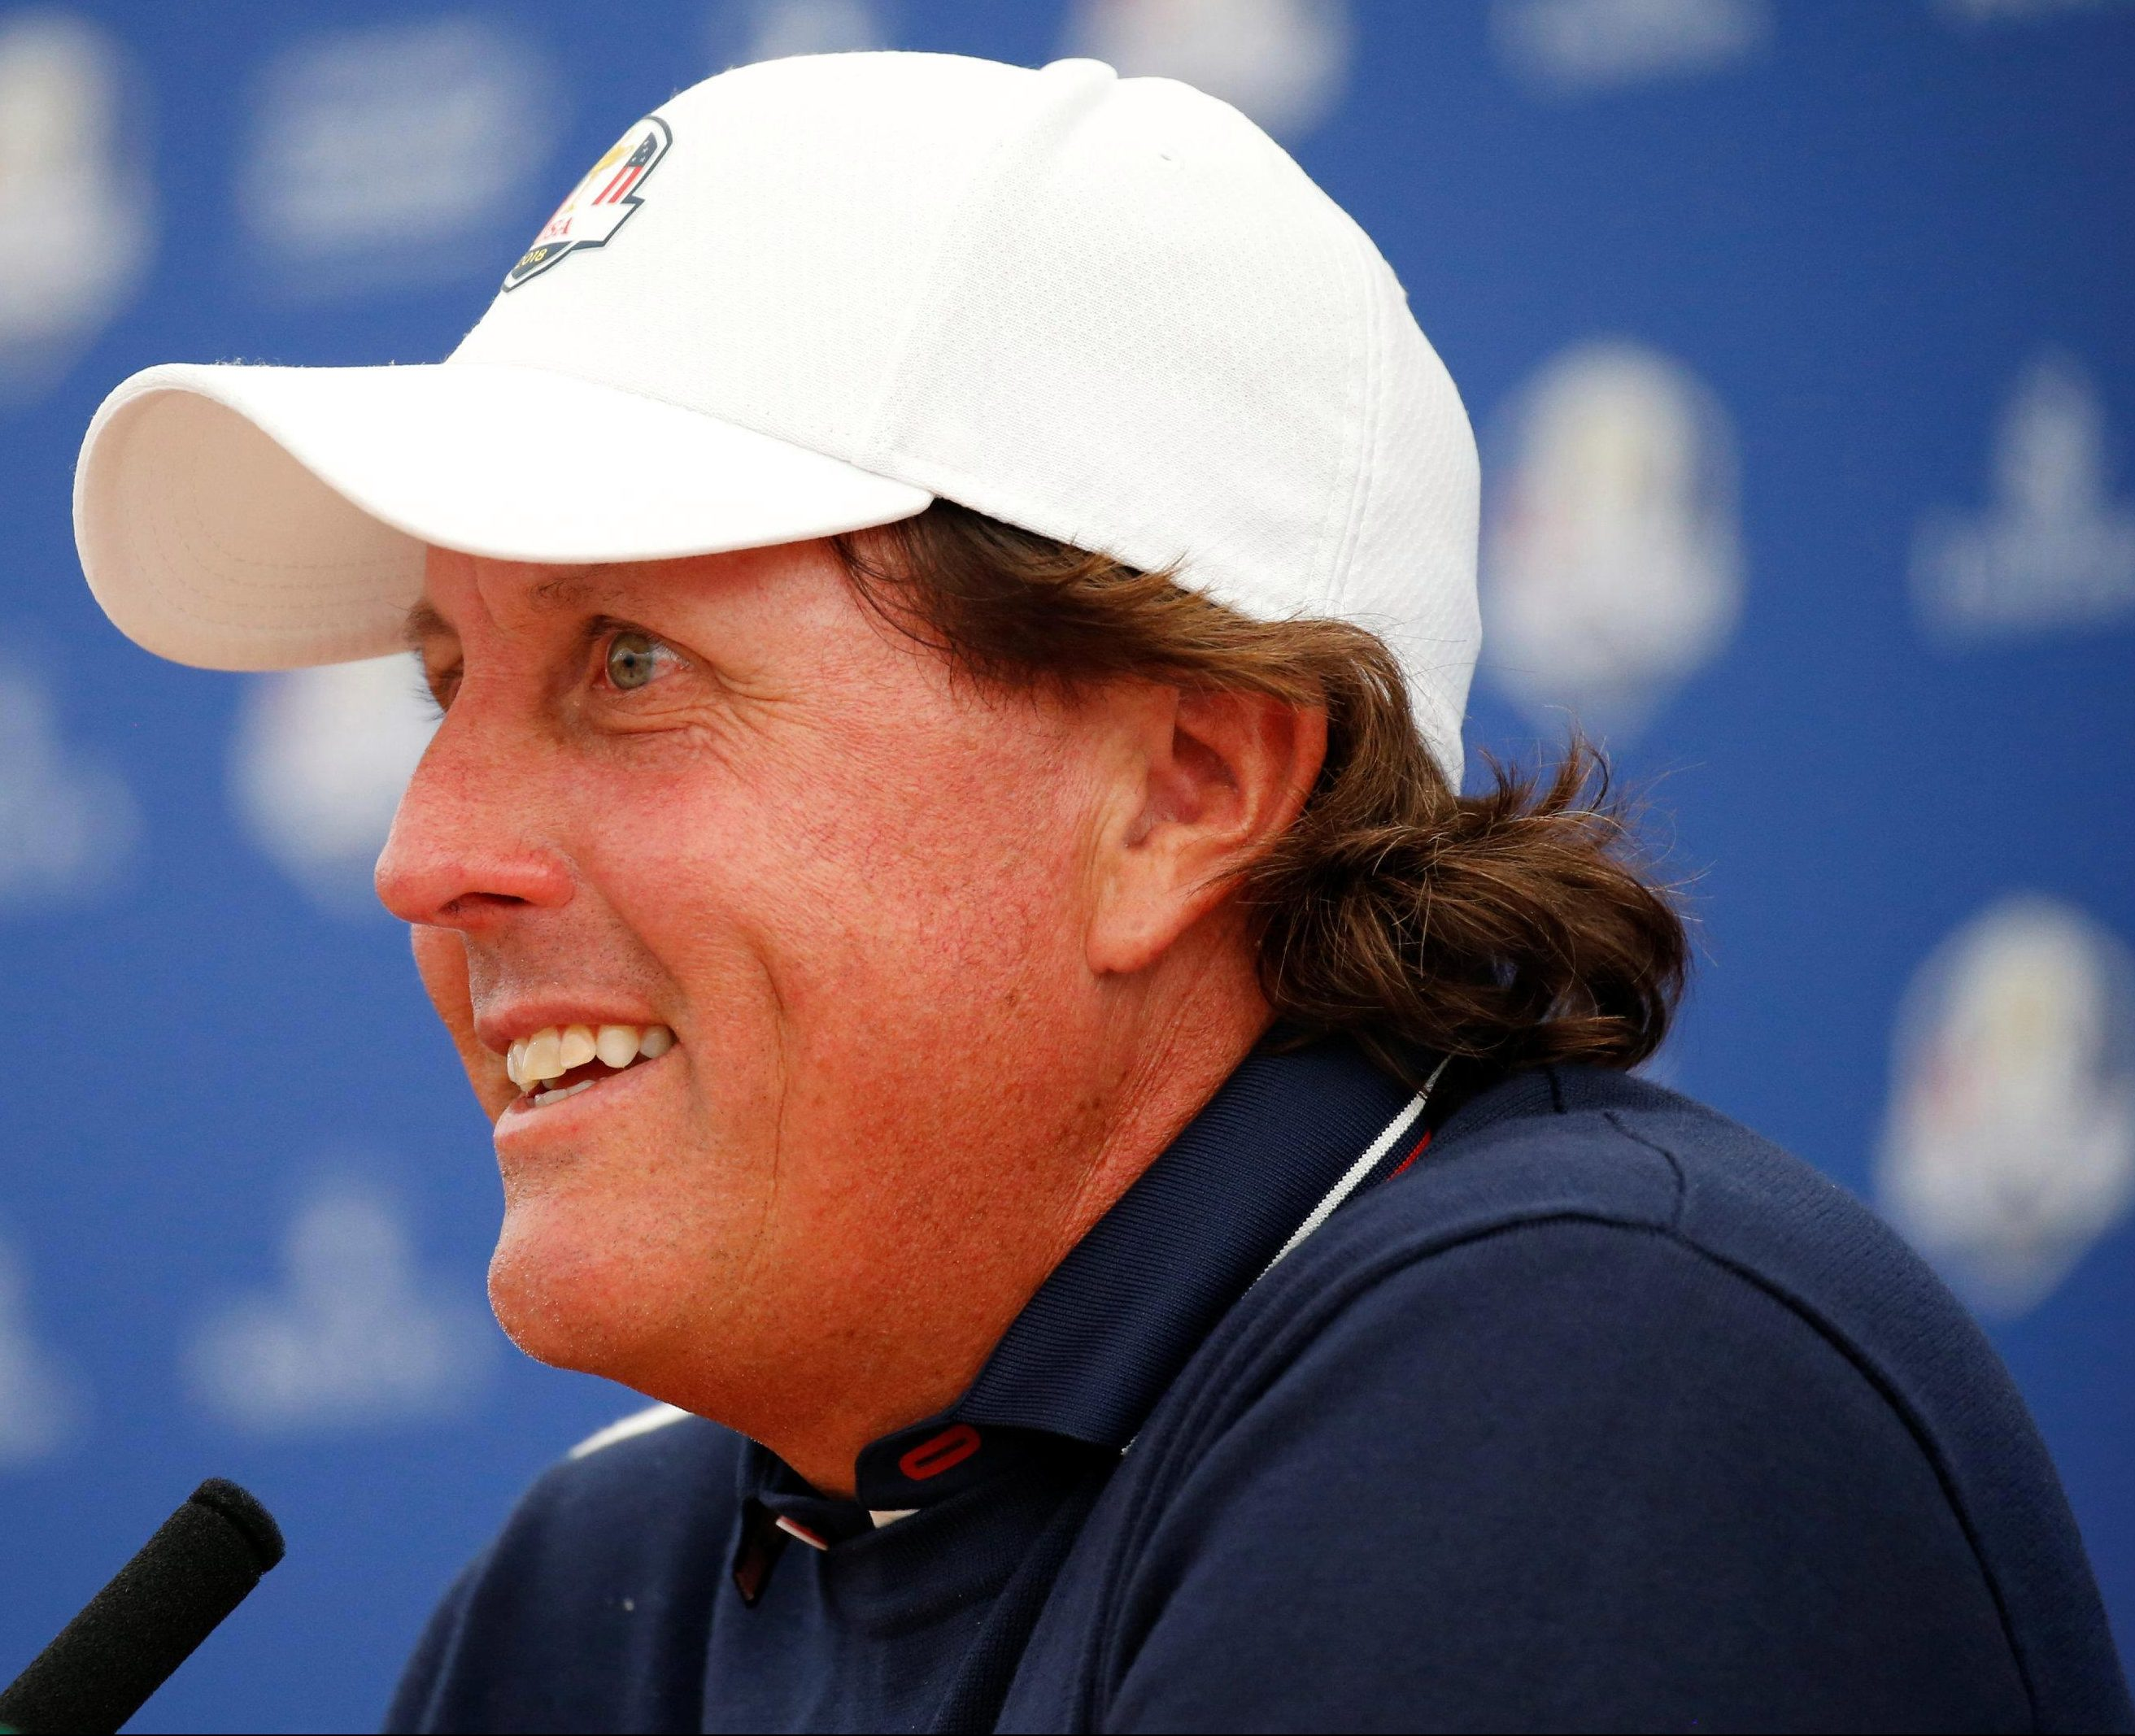 Phil Mickelson, like Tiger, will want to improve on his Ryder Cup record